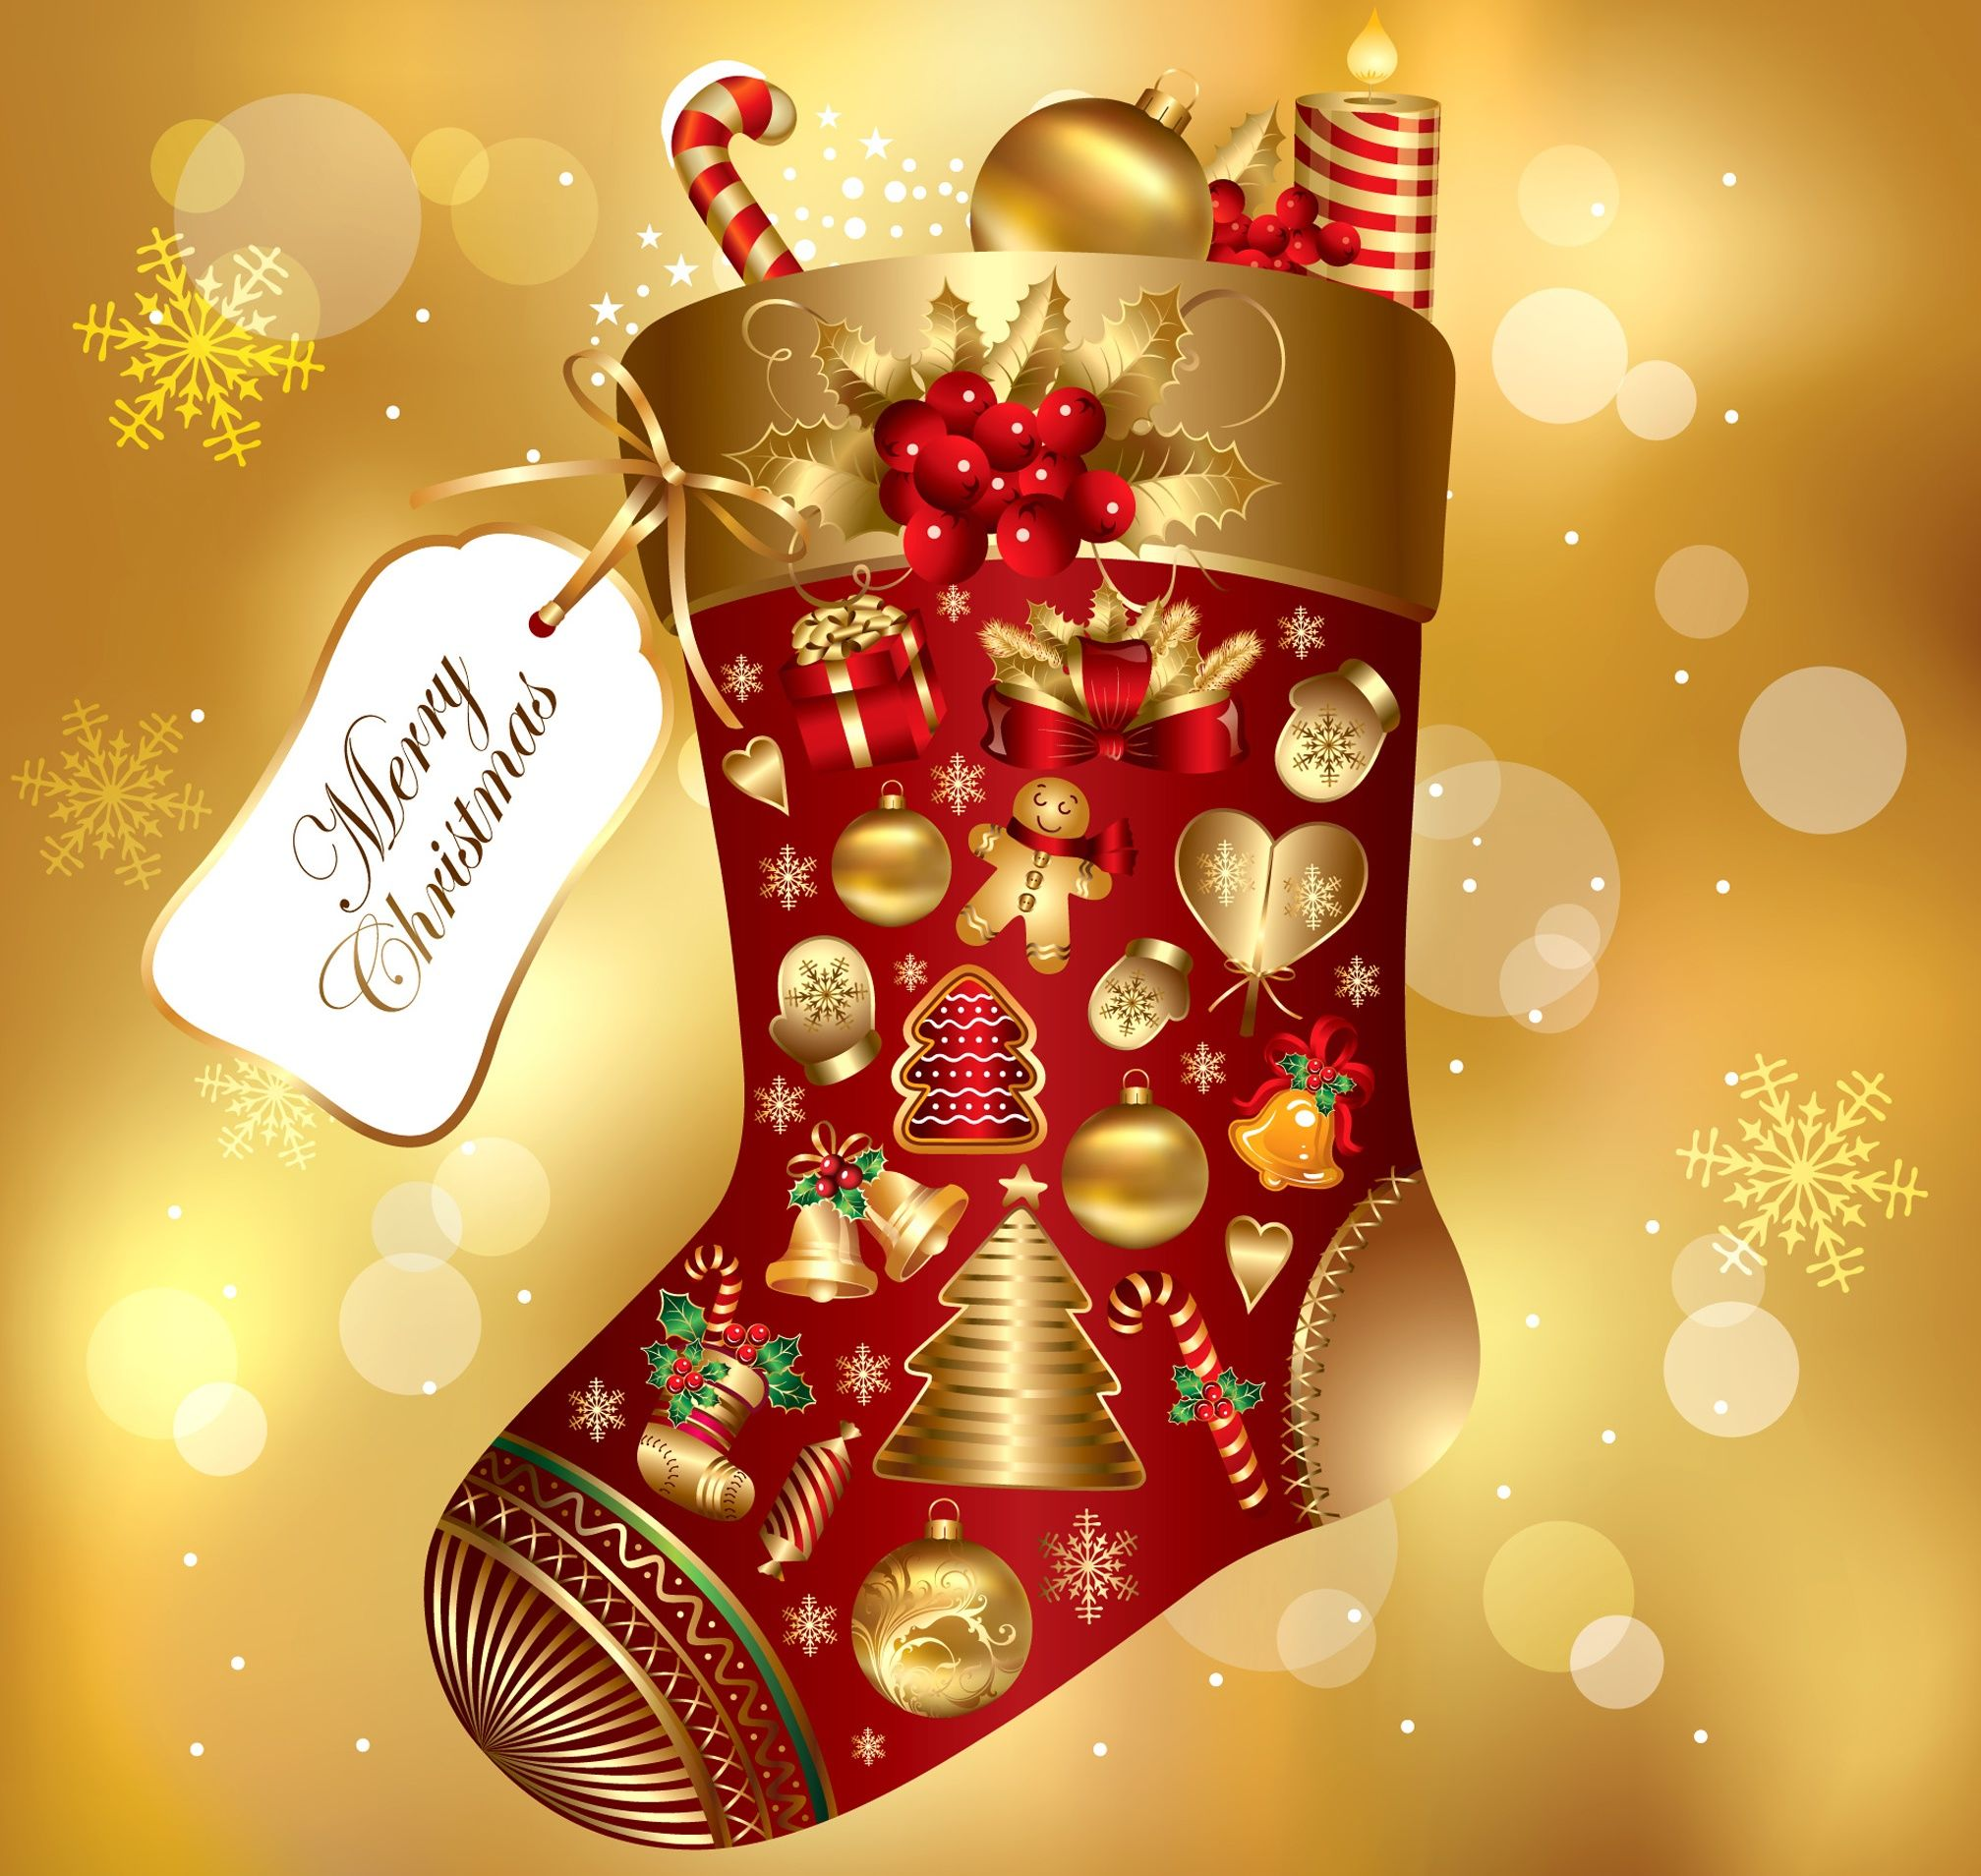 Merry Christmas Quote For Friends Pictures, Photos, and Images for ...